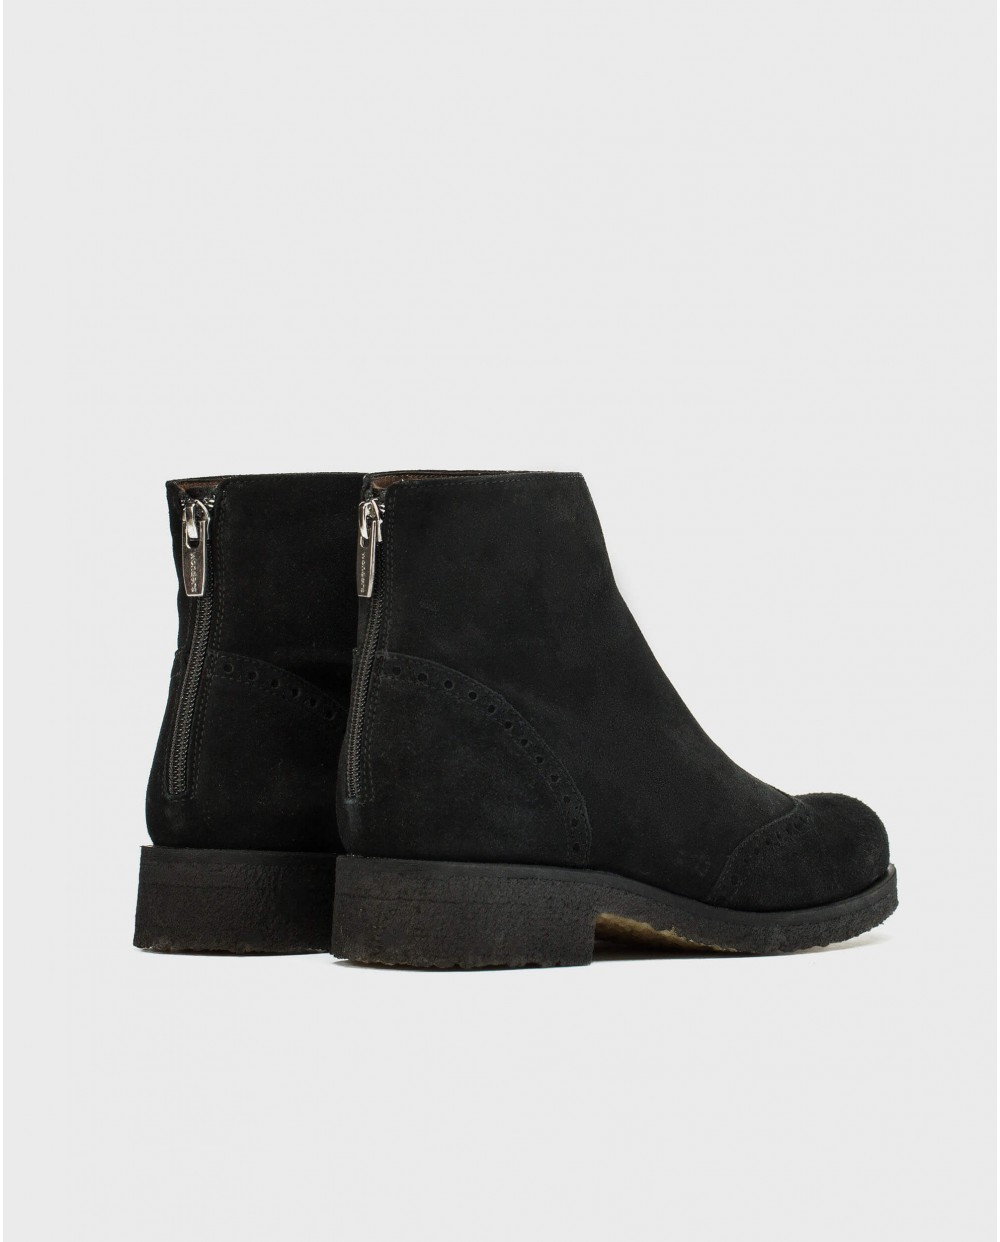 Crepe Chelsea ankle boot